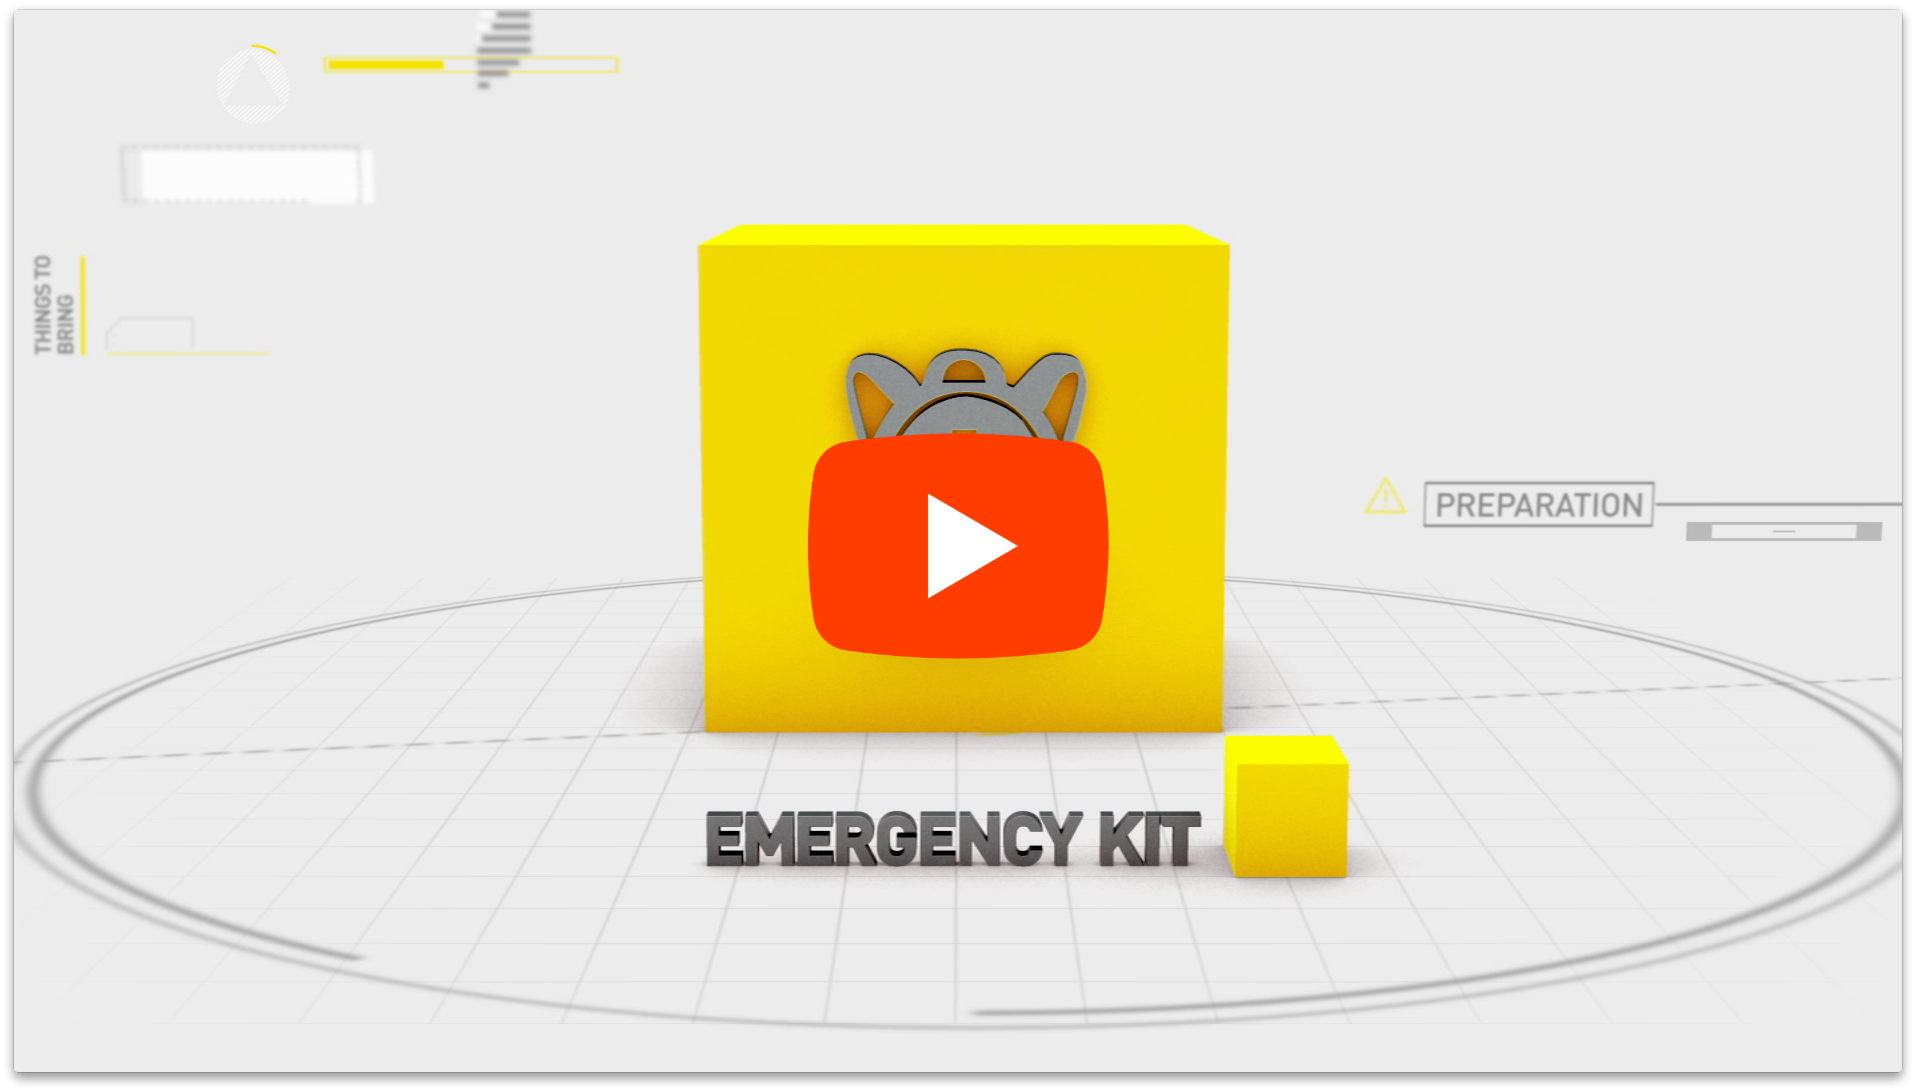 <p>Emergency Kit</p>